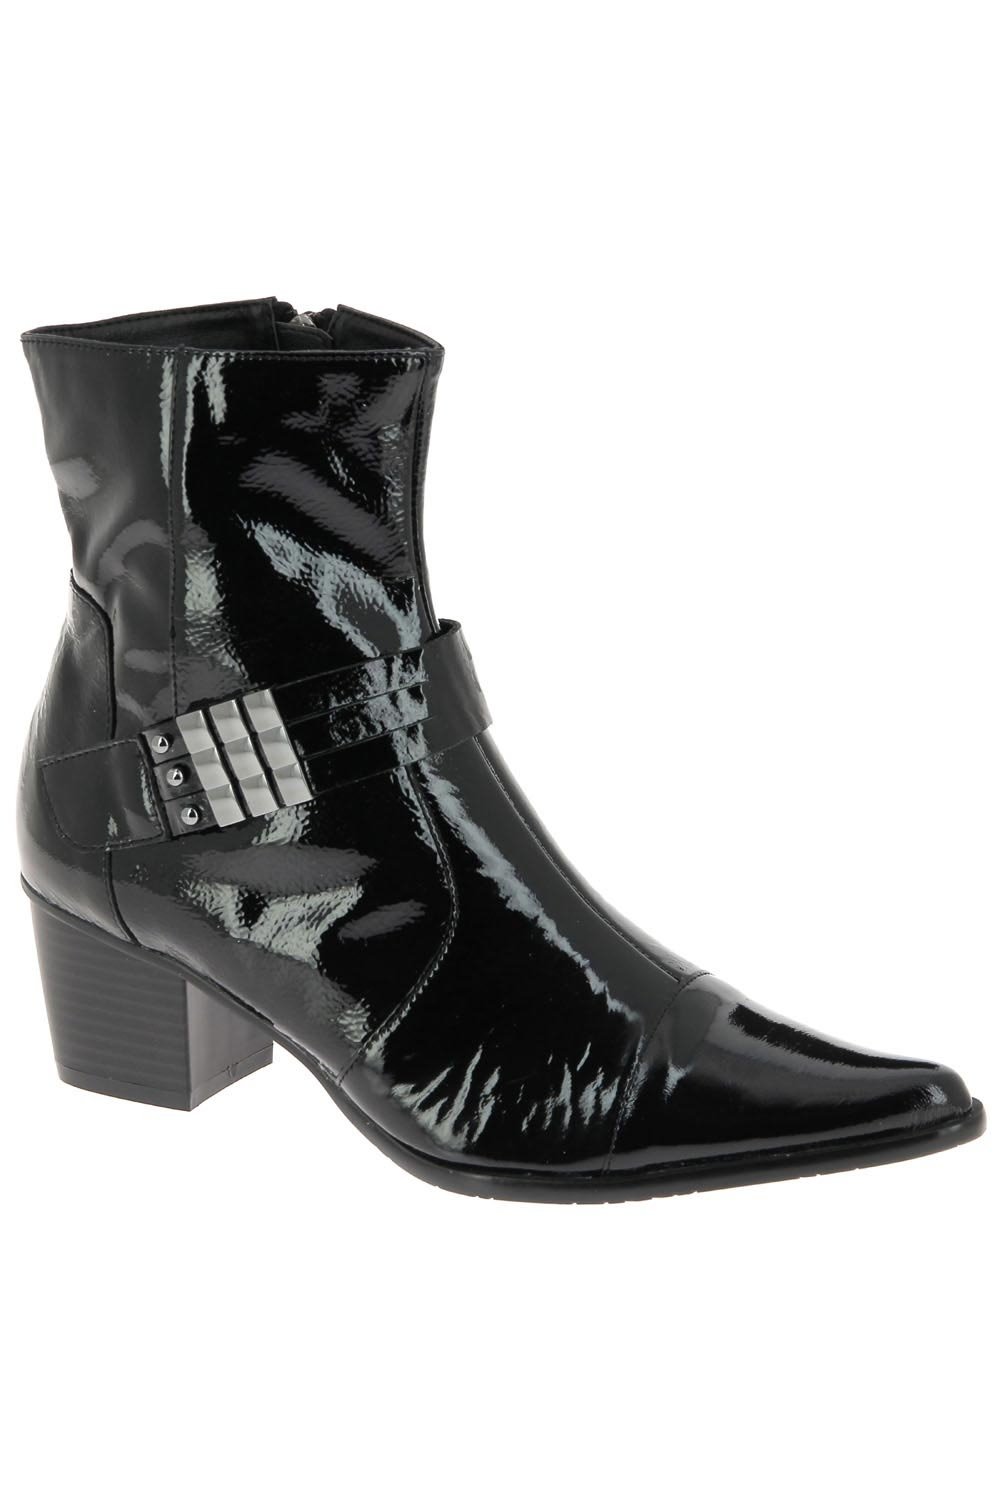 chaussures madison femme